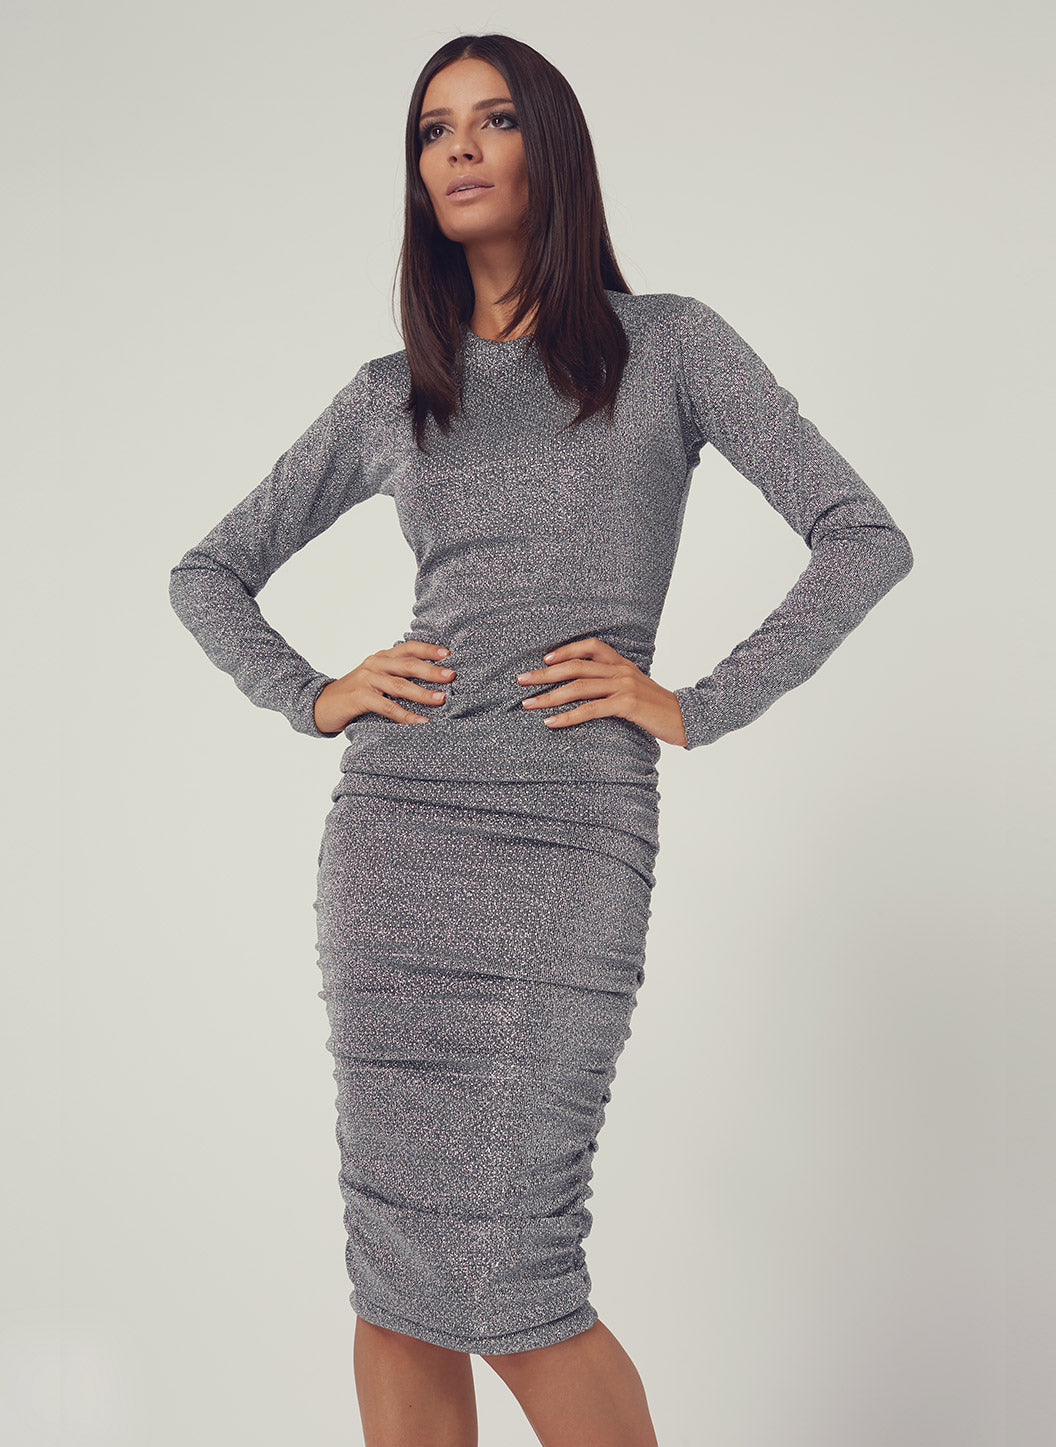 Look 18 Gathered Midi Dress Silver - Melissa Odabash Anniversary Collection